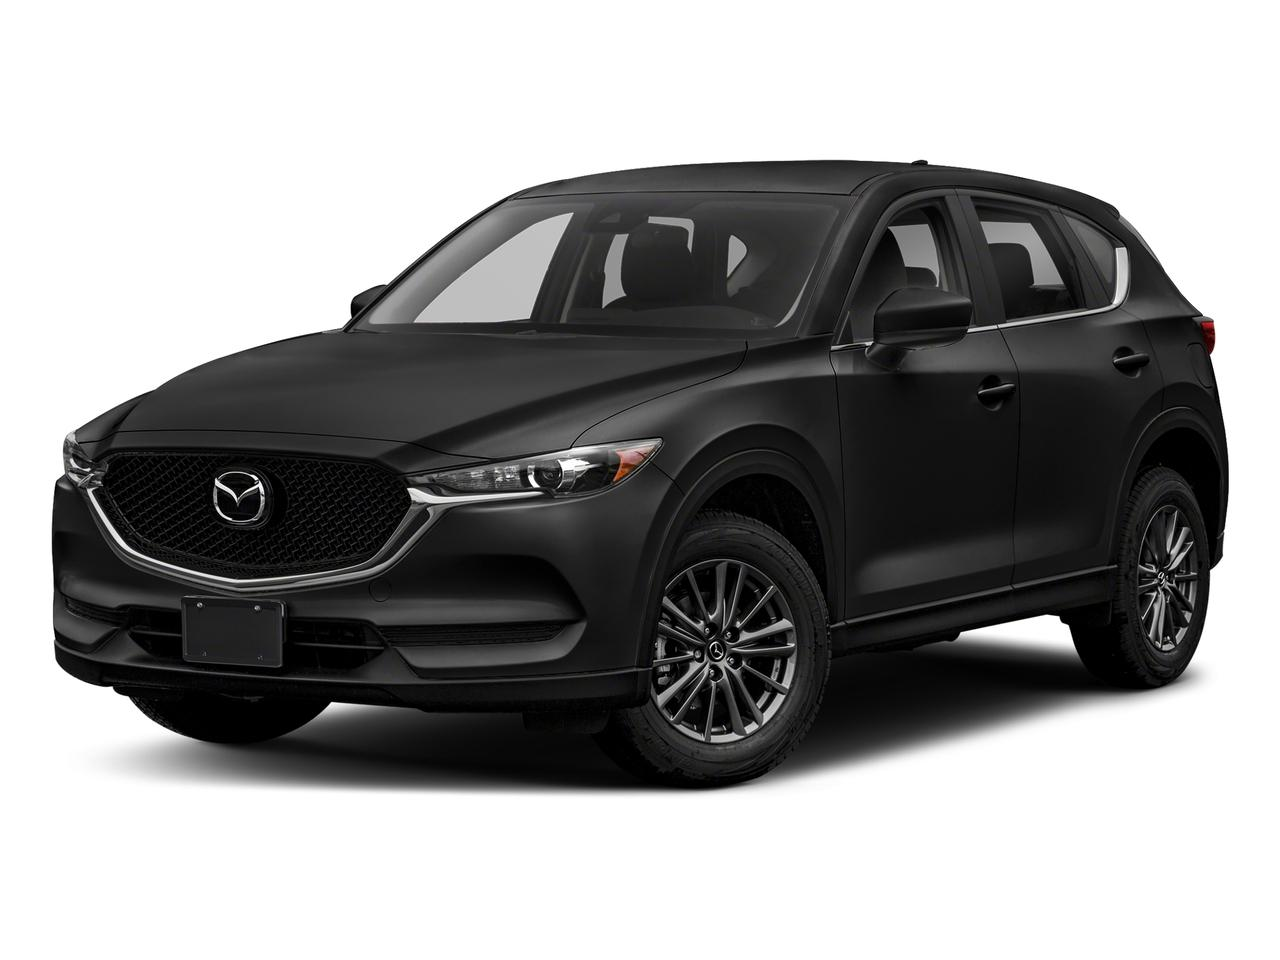 2018 Mazda CX-5 Vehicle Photo in Manassas, VA 20109